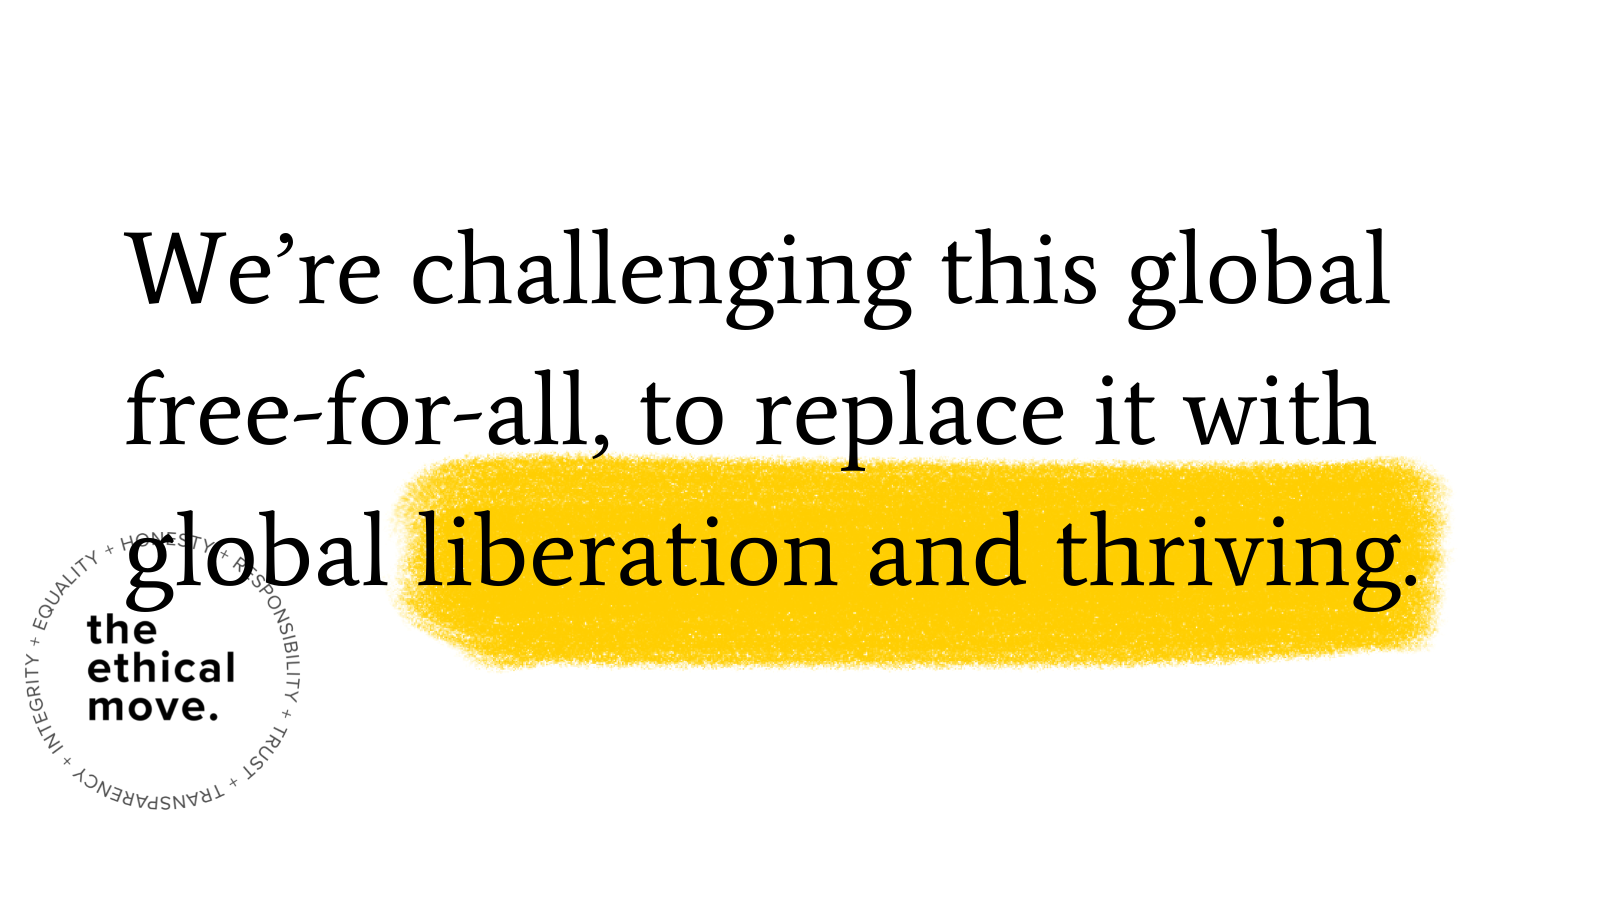 """Graphic with the ethical move logo and the words """"We're challenging this global free-for-all, to replace it with global liberation and thriving."""" 'Liberation and thriving' are highlighted with yellow marker."""